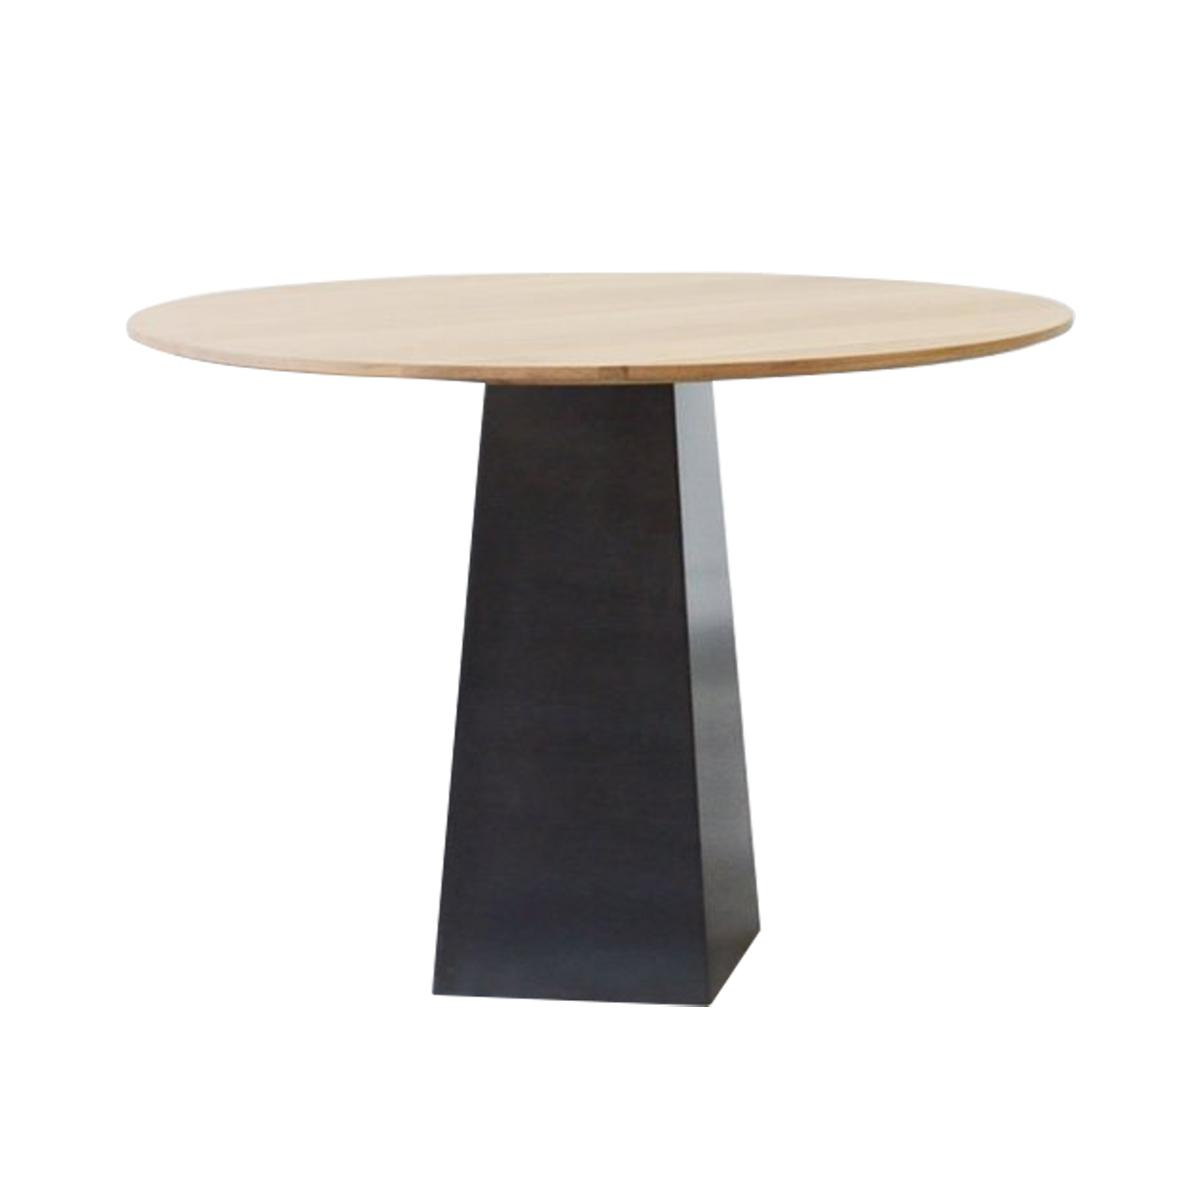 Most Recent Brockton Dining Table With Regard To Morris Round Dining Tables (View 5 of 30)